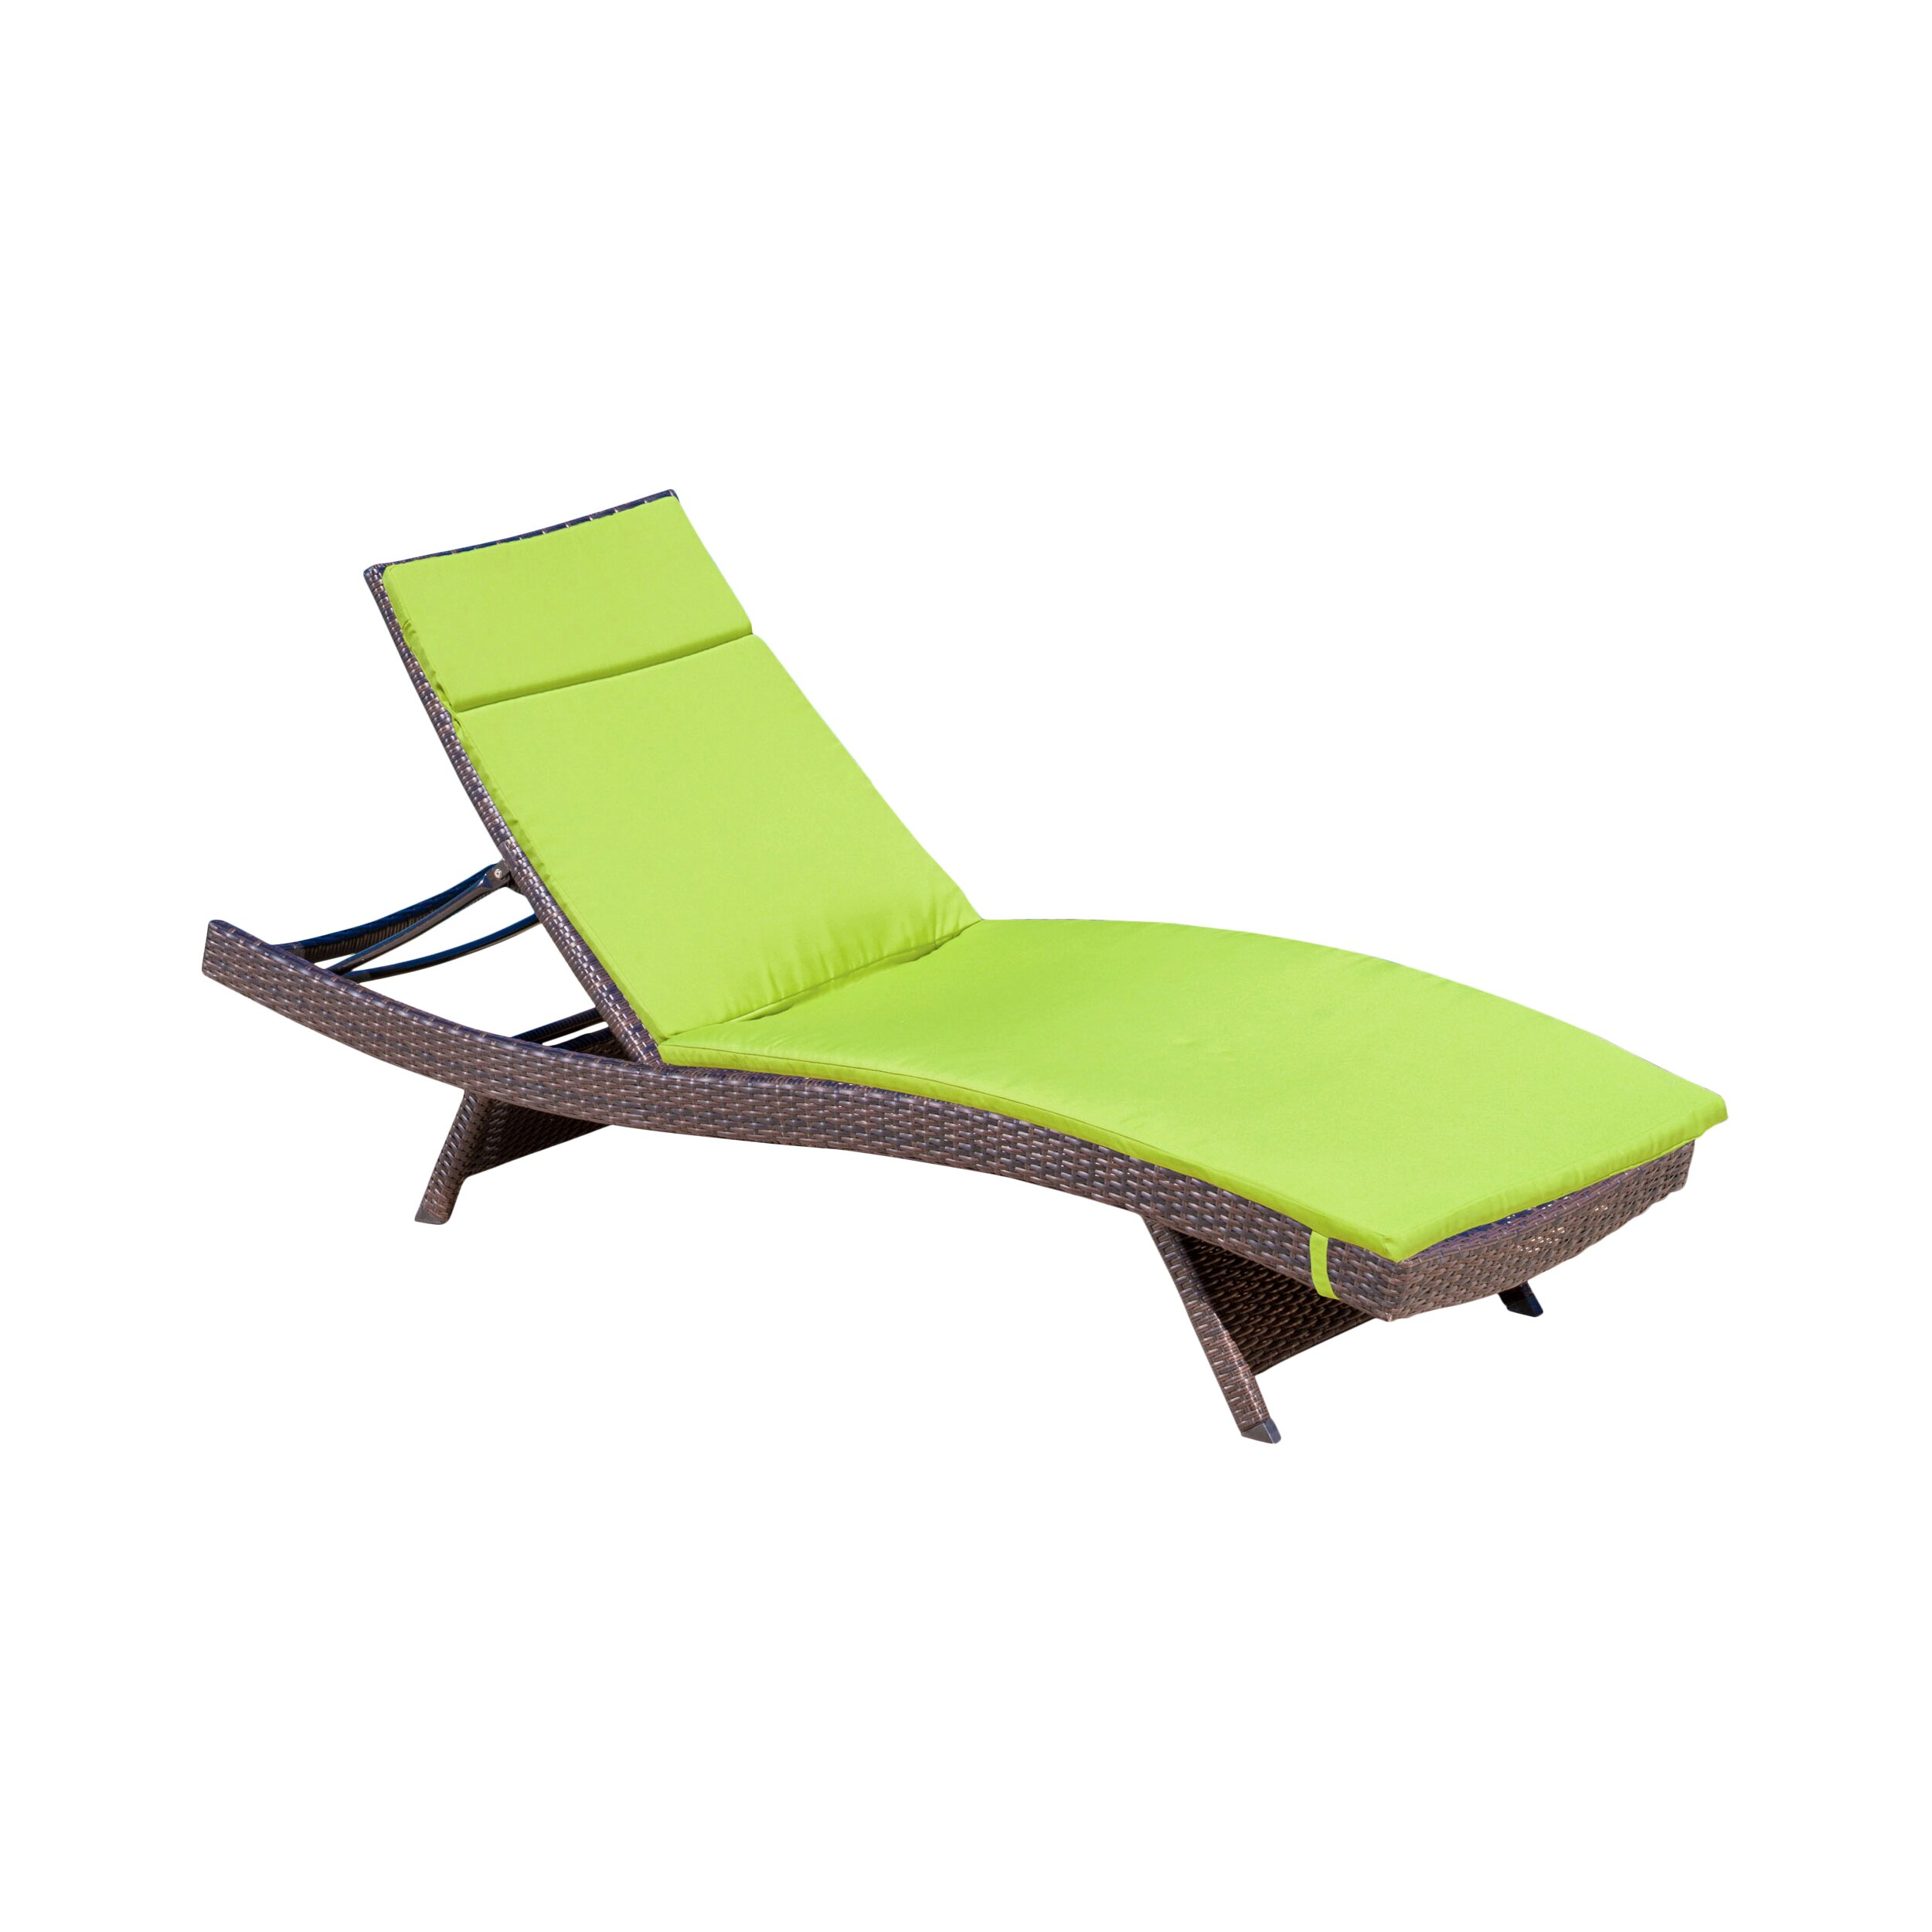 Wade logan claverton down outdoor chaise lounge cushion for Chaise lounge cushion outdoor